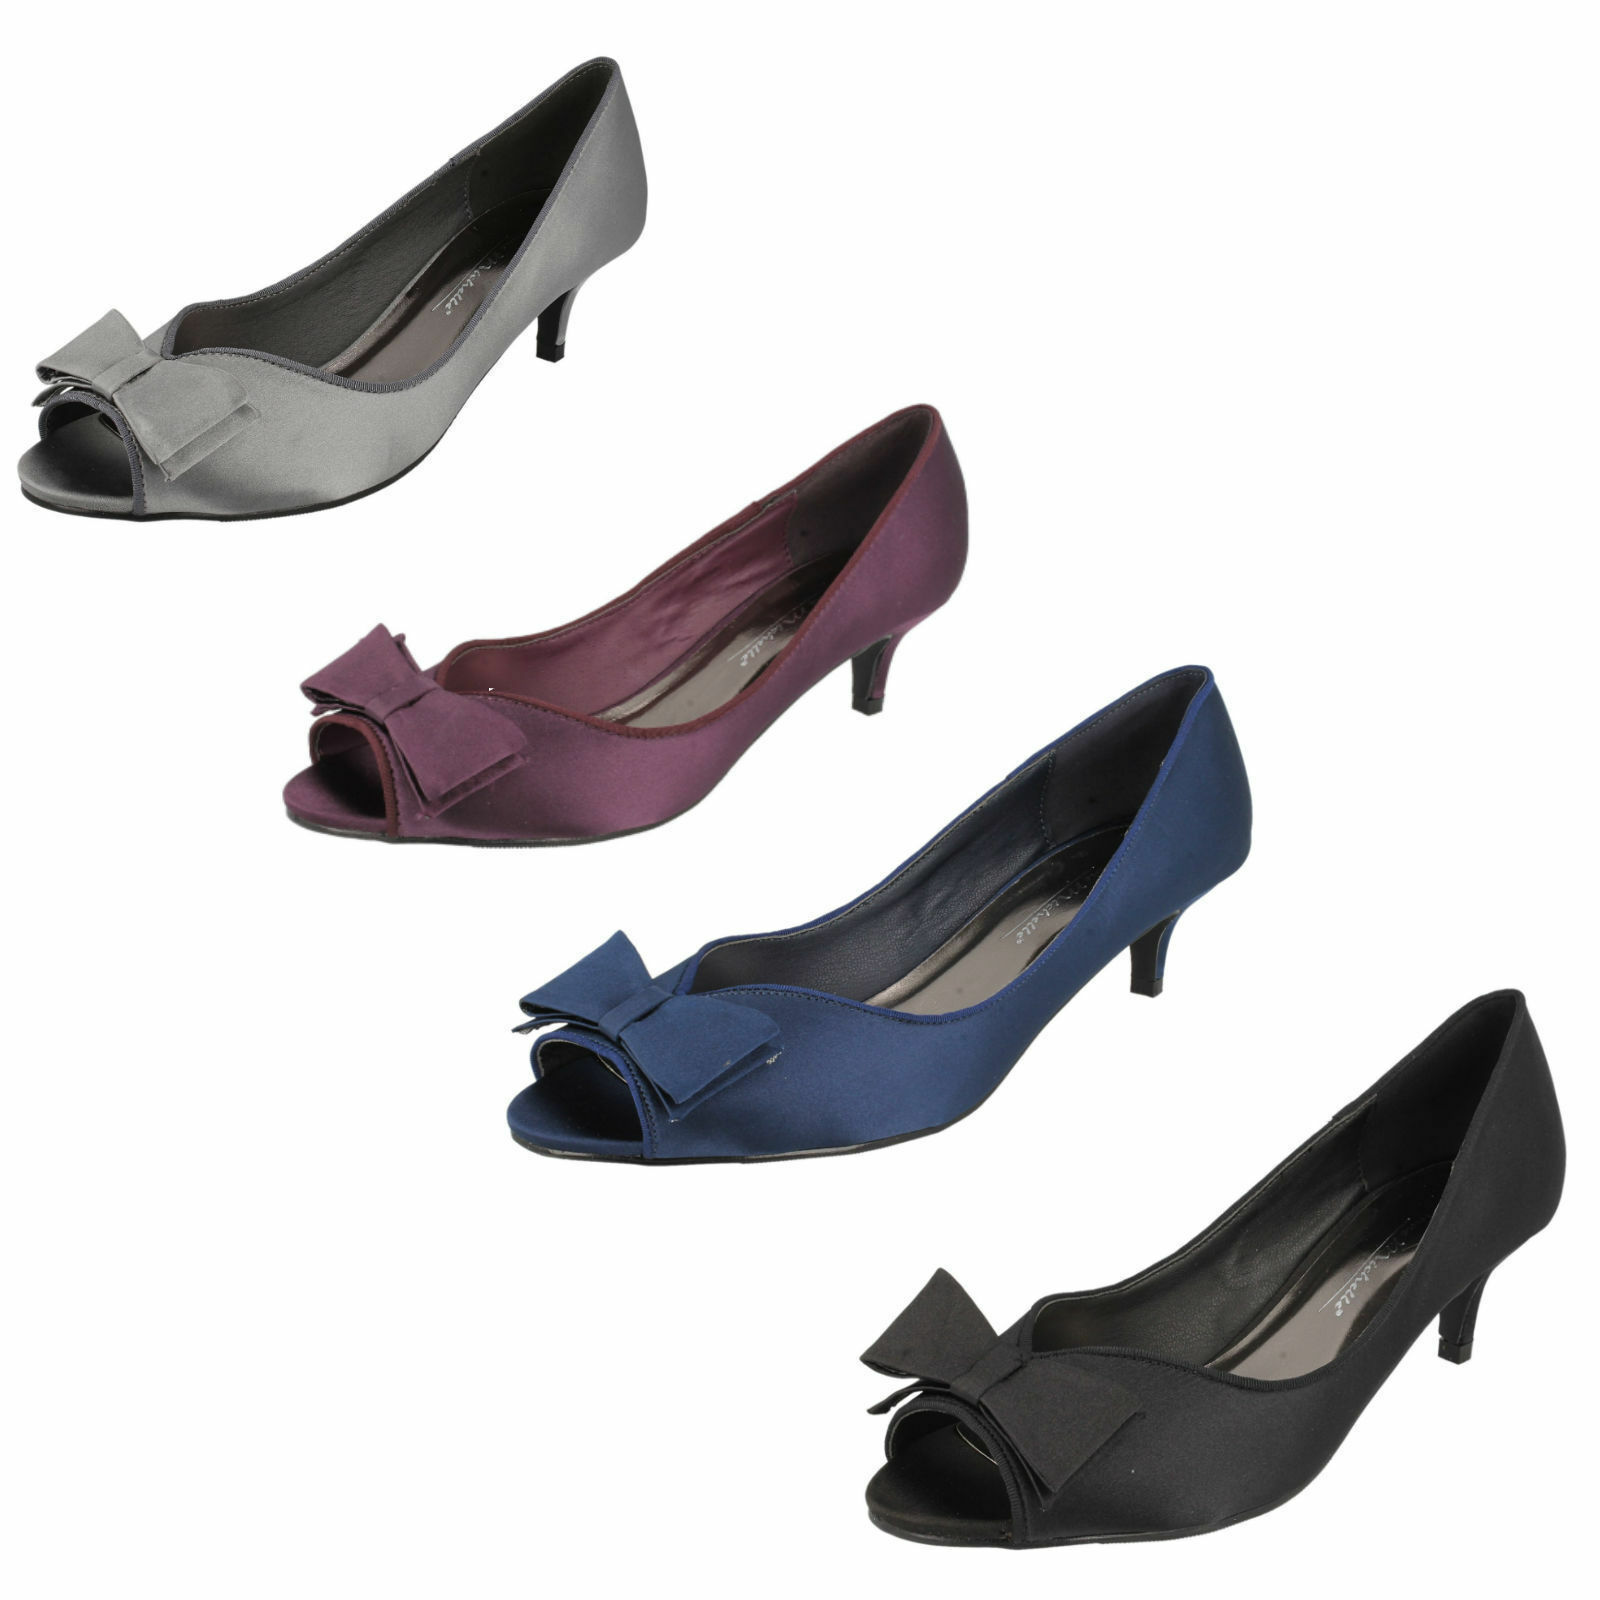 Anne Michelle Satin Evening/Occasi<wbr/>on Shoes F10308